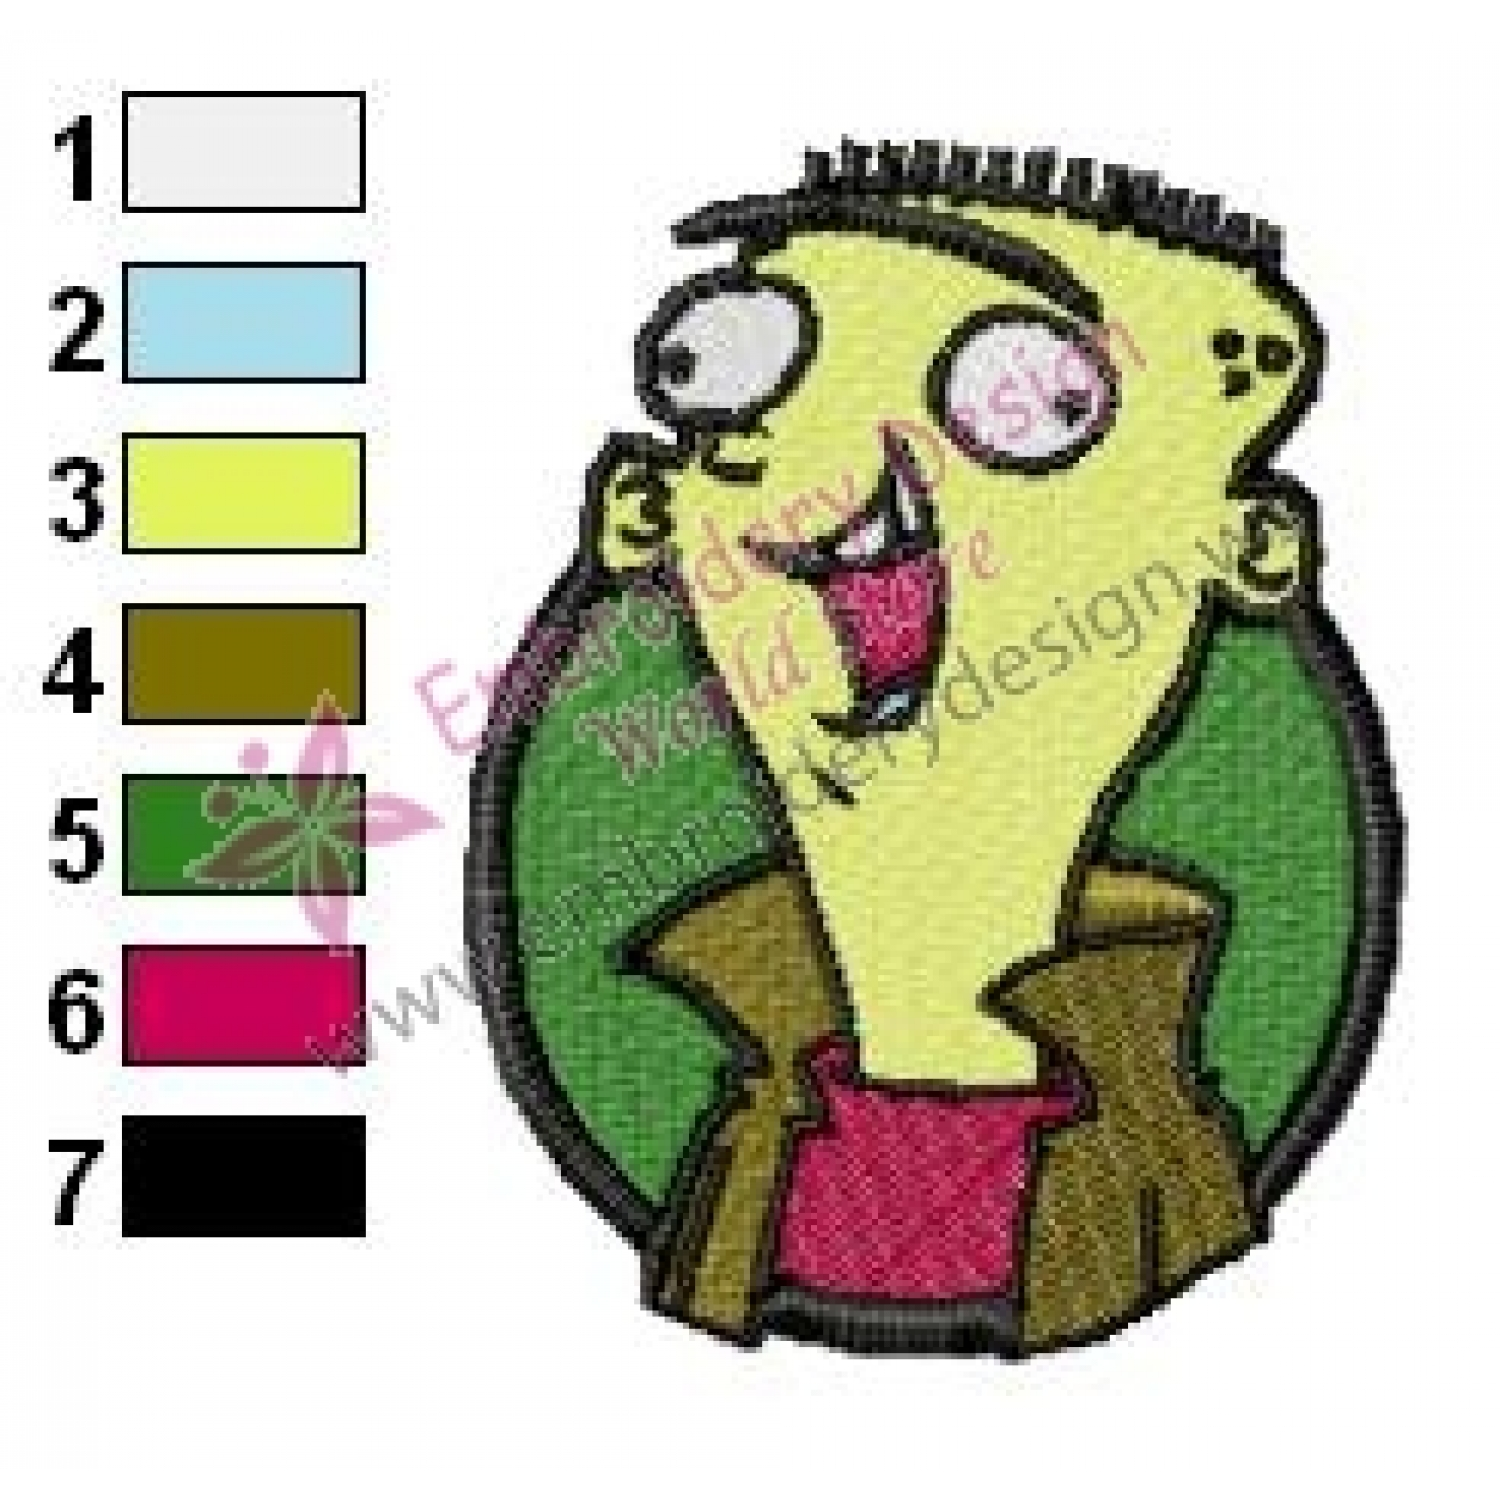 Ed edd and eddy funny images hd wallpaper